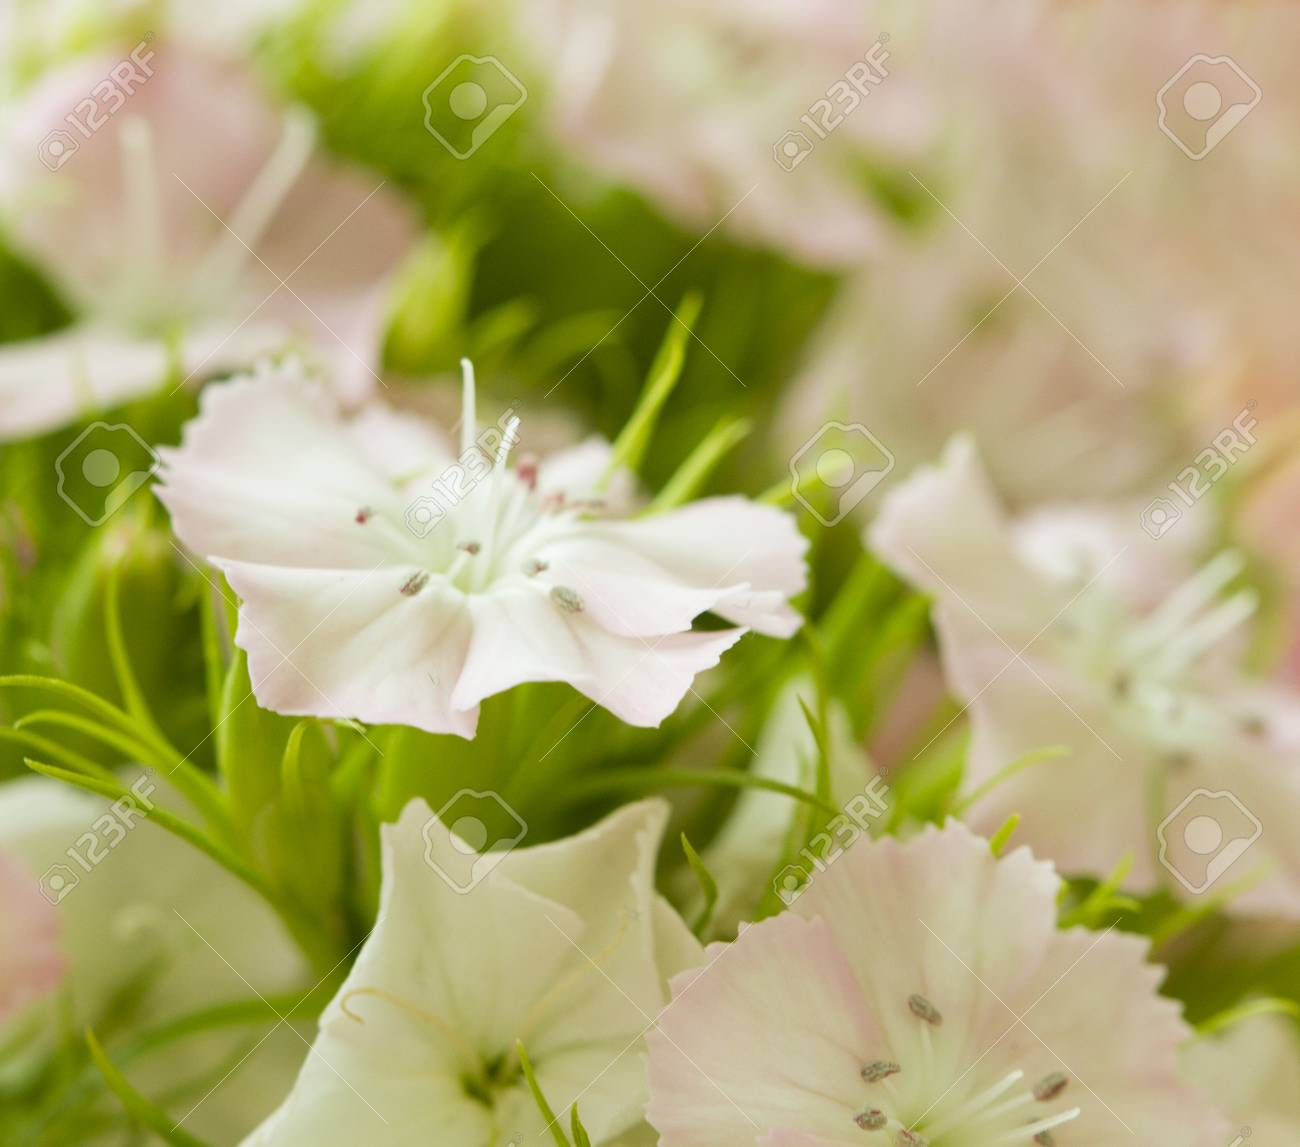 Pink and white sweet william like spring background outdoor stock pink and white sweet william like spring background outdoor blurred stock photo 72764232 mightylinksfo